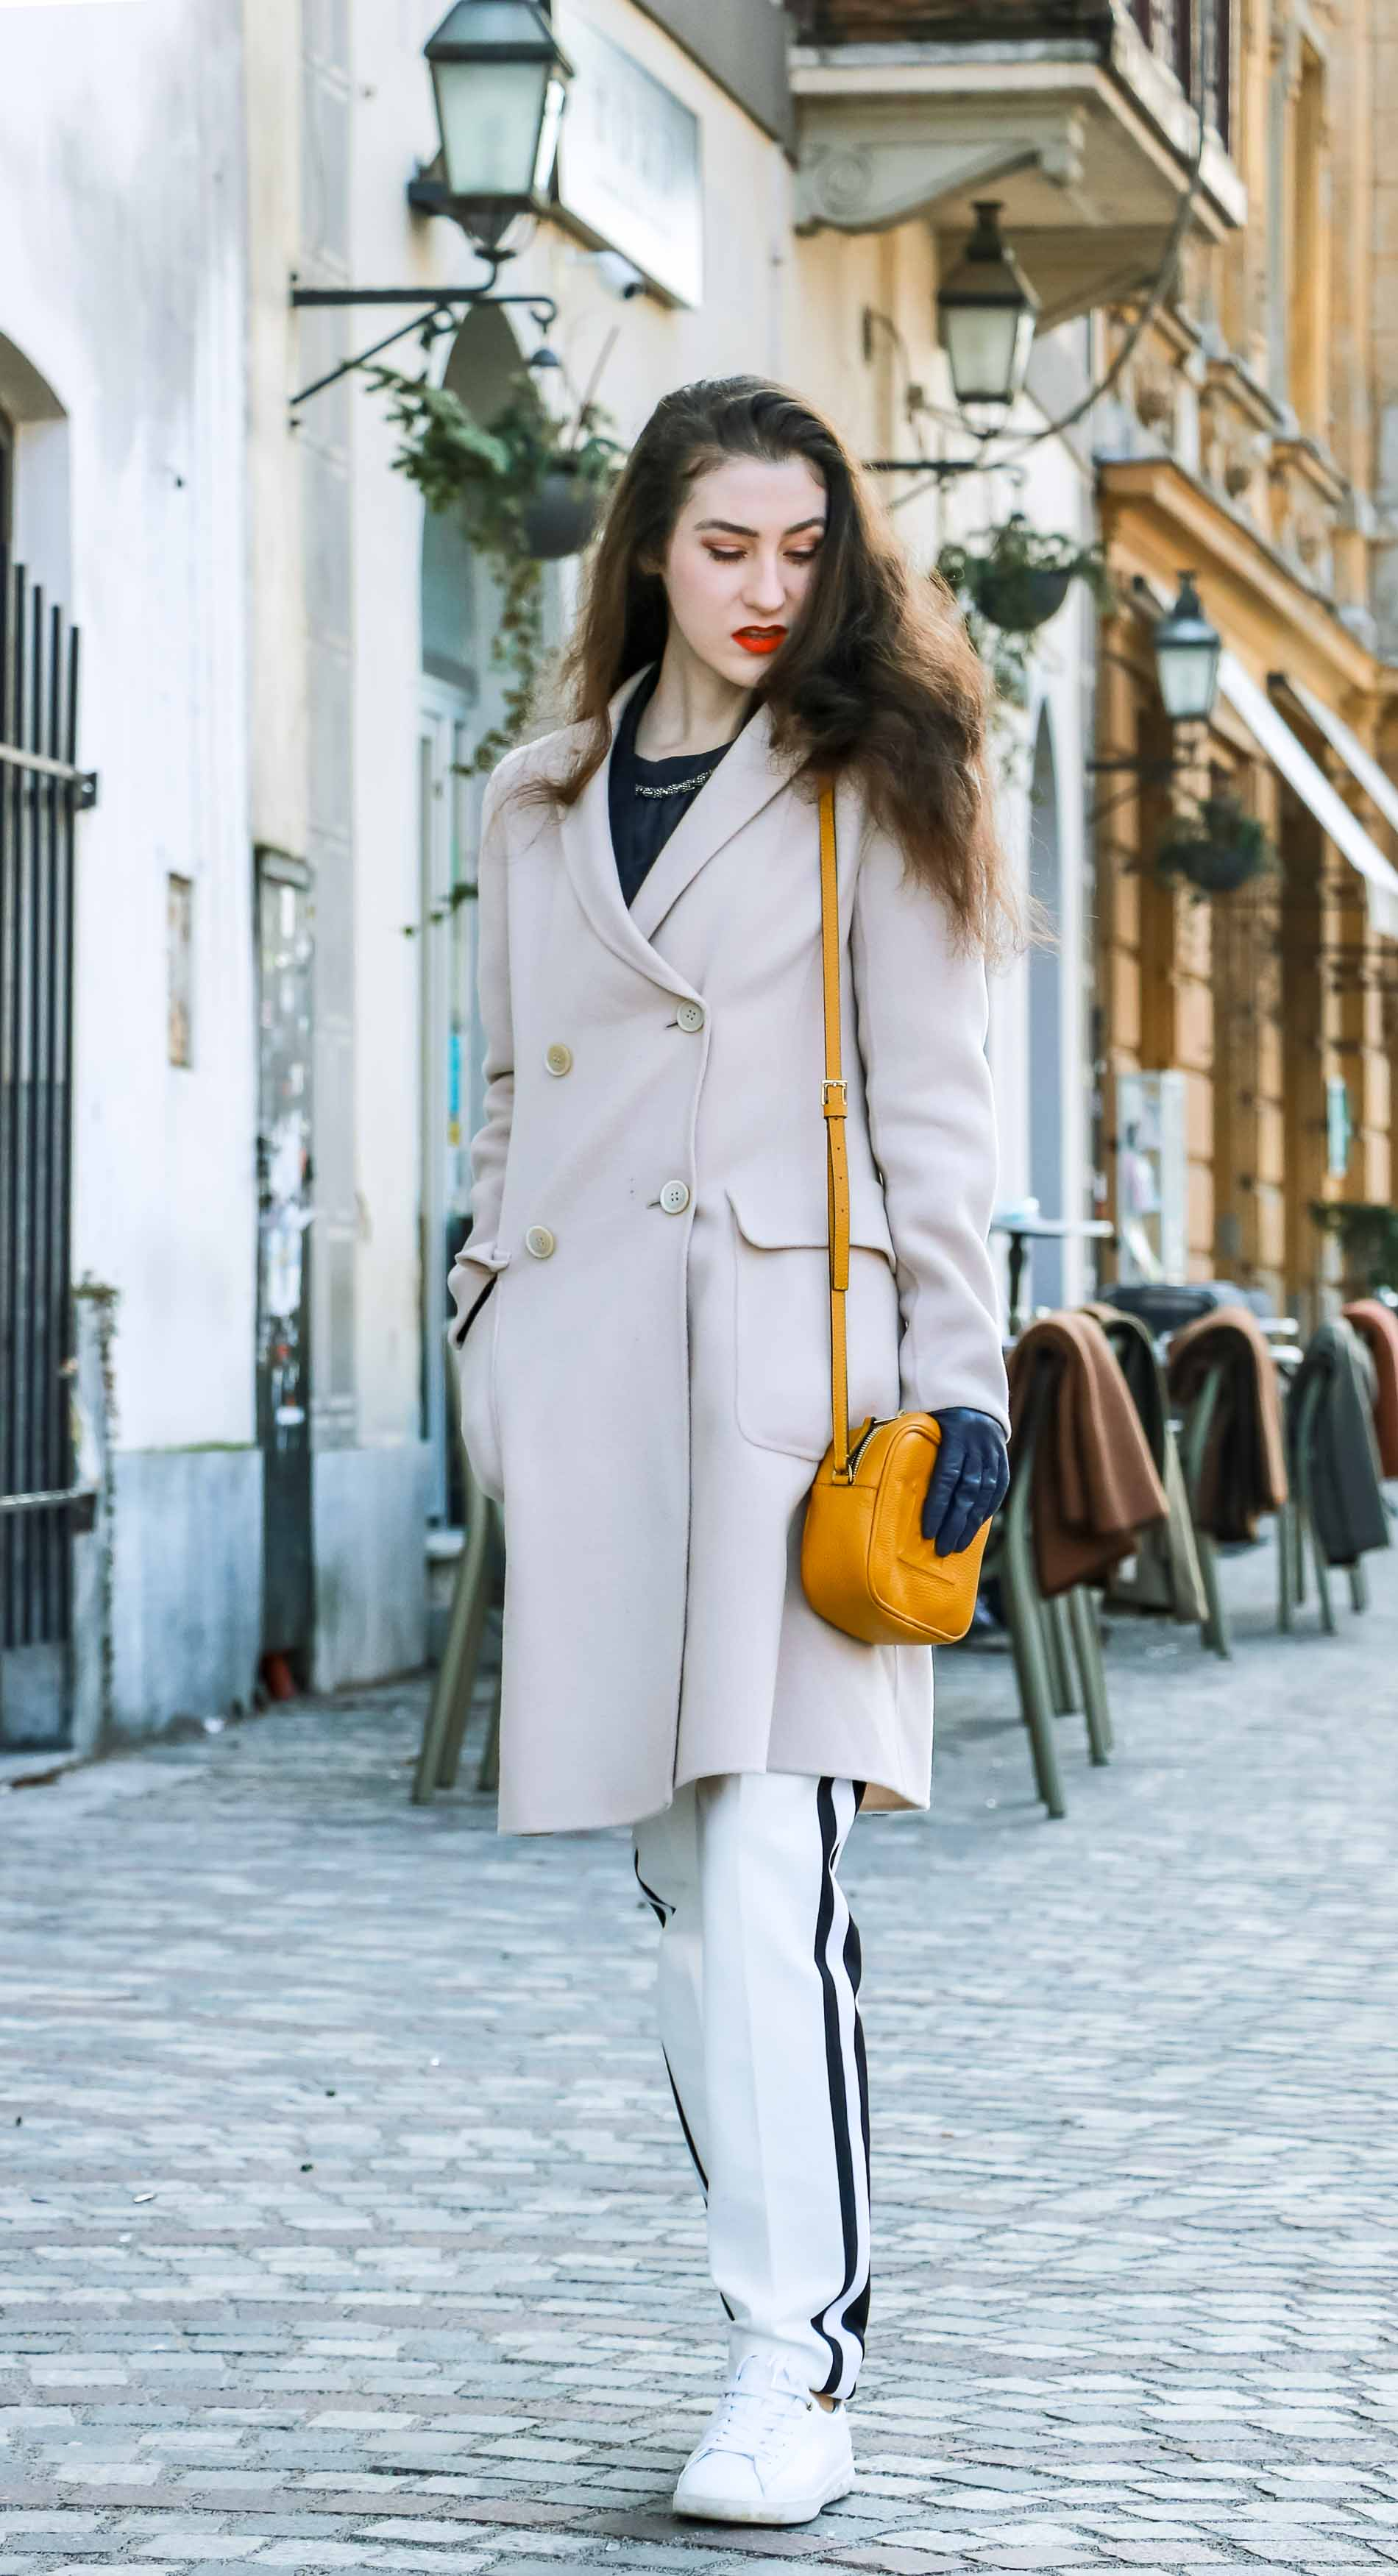 Fashion Blogger Veronika Lipar of Brunette from Wall Street dressed in white track pants with black side stripe from Escada, black silk blouse, off-white pastel double breasted coat from Weekend Max Mara, white leather sneakers from Diesel, yellow shoulder bag with logo from Escada while walking down the street in Ljubljana